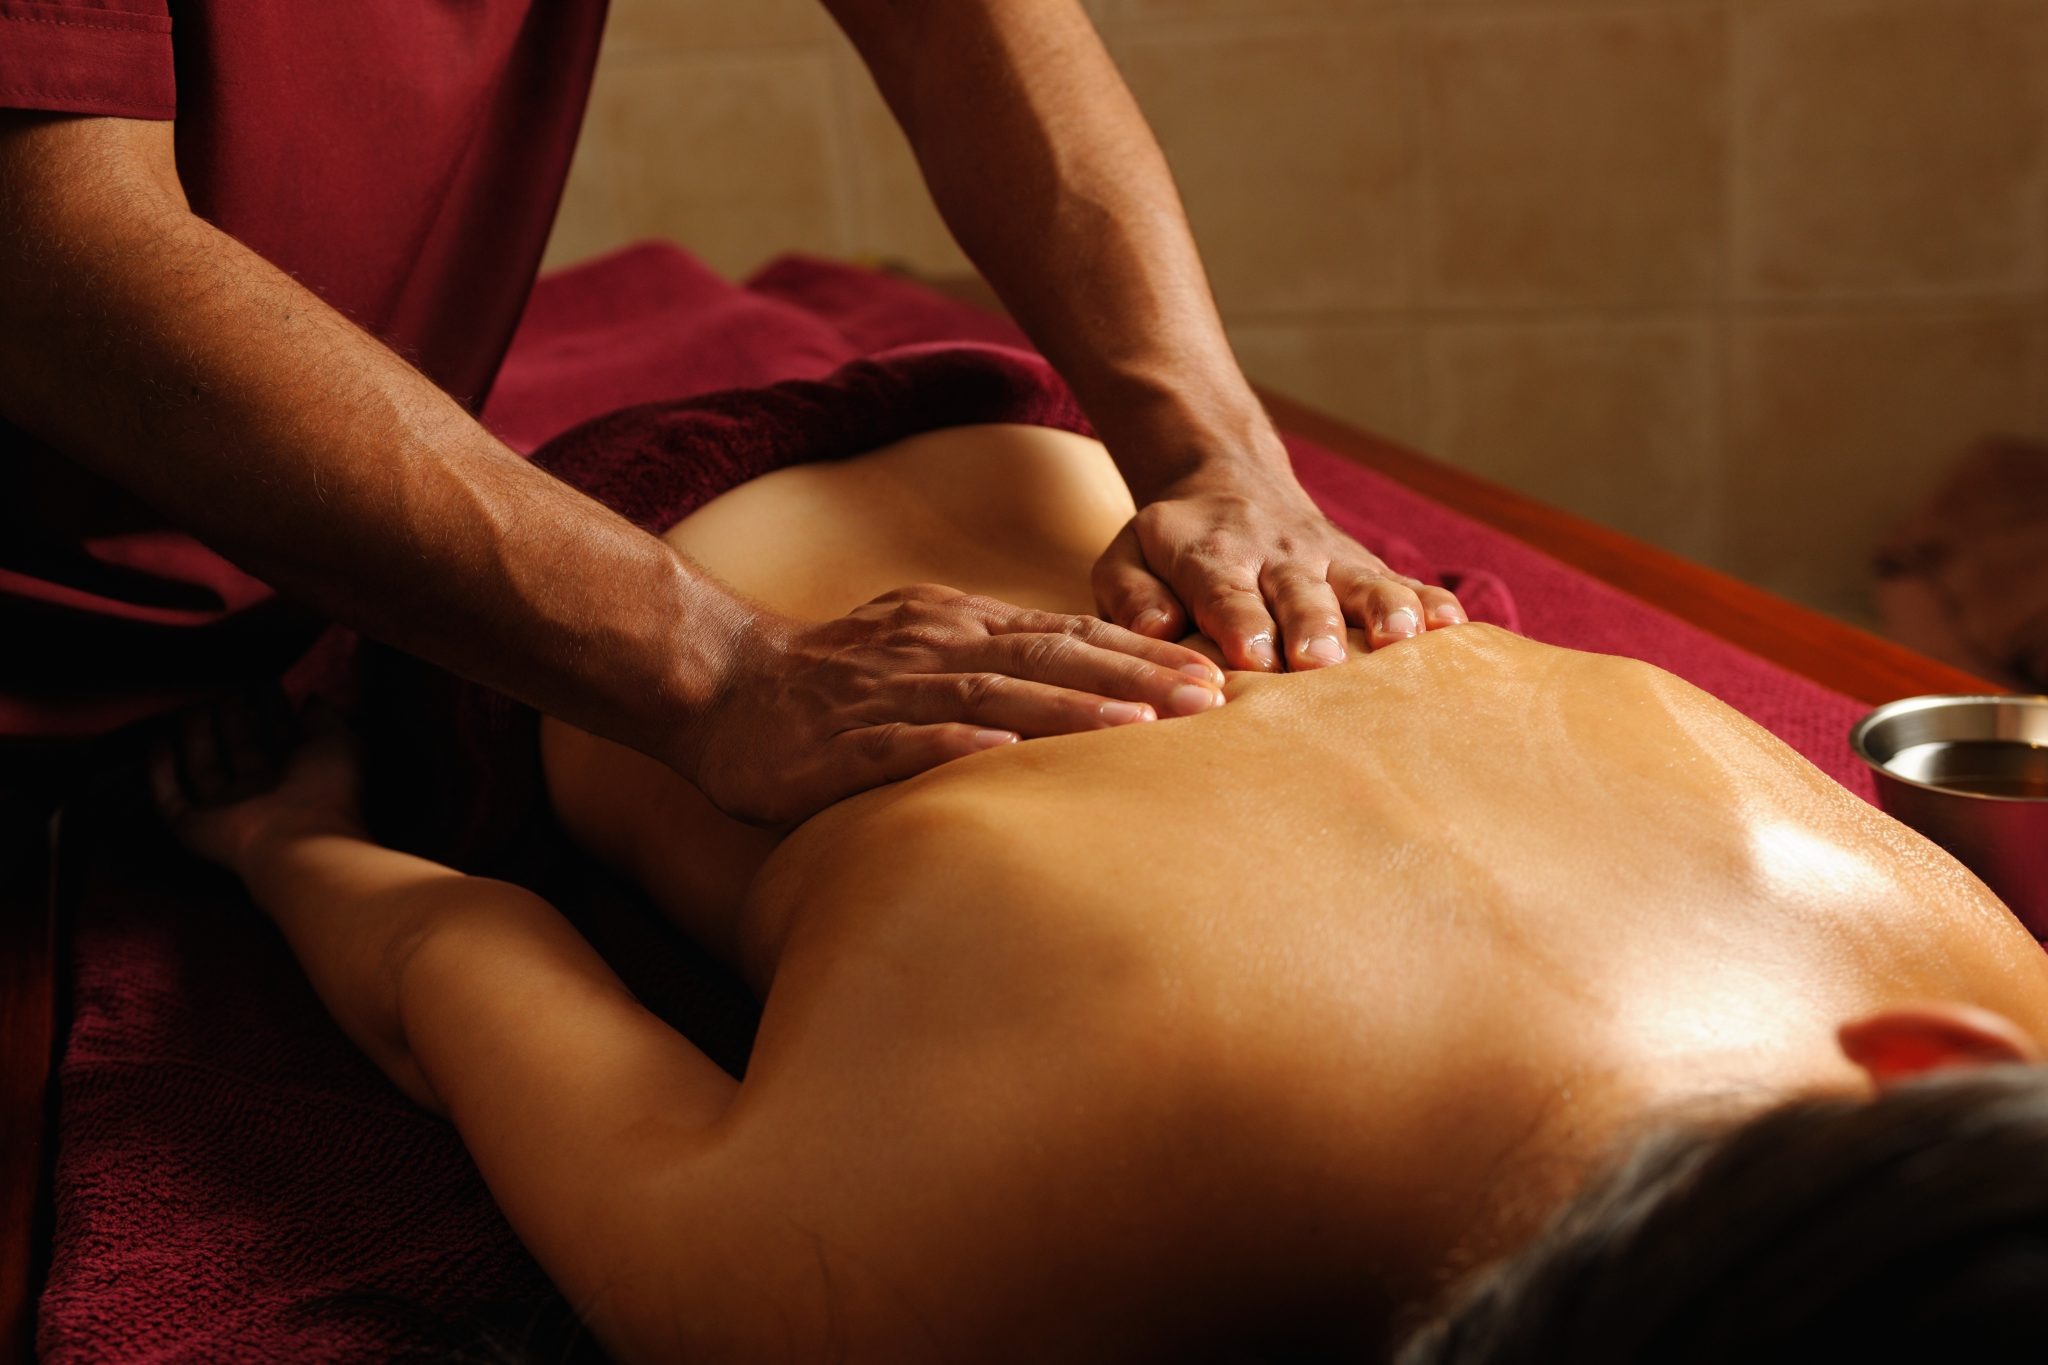 Can Ayurvedic massage solve emotional problems?